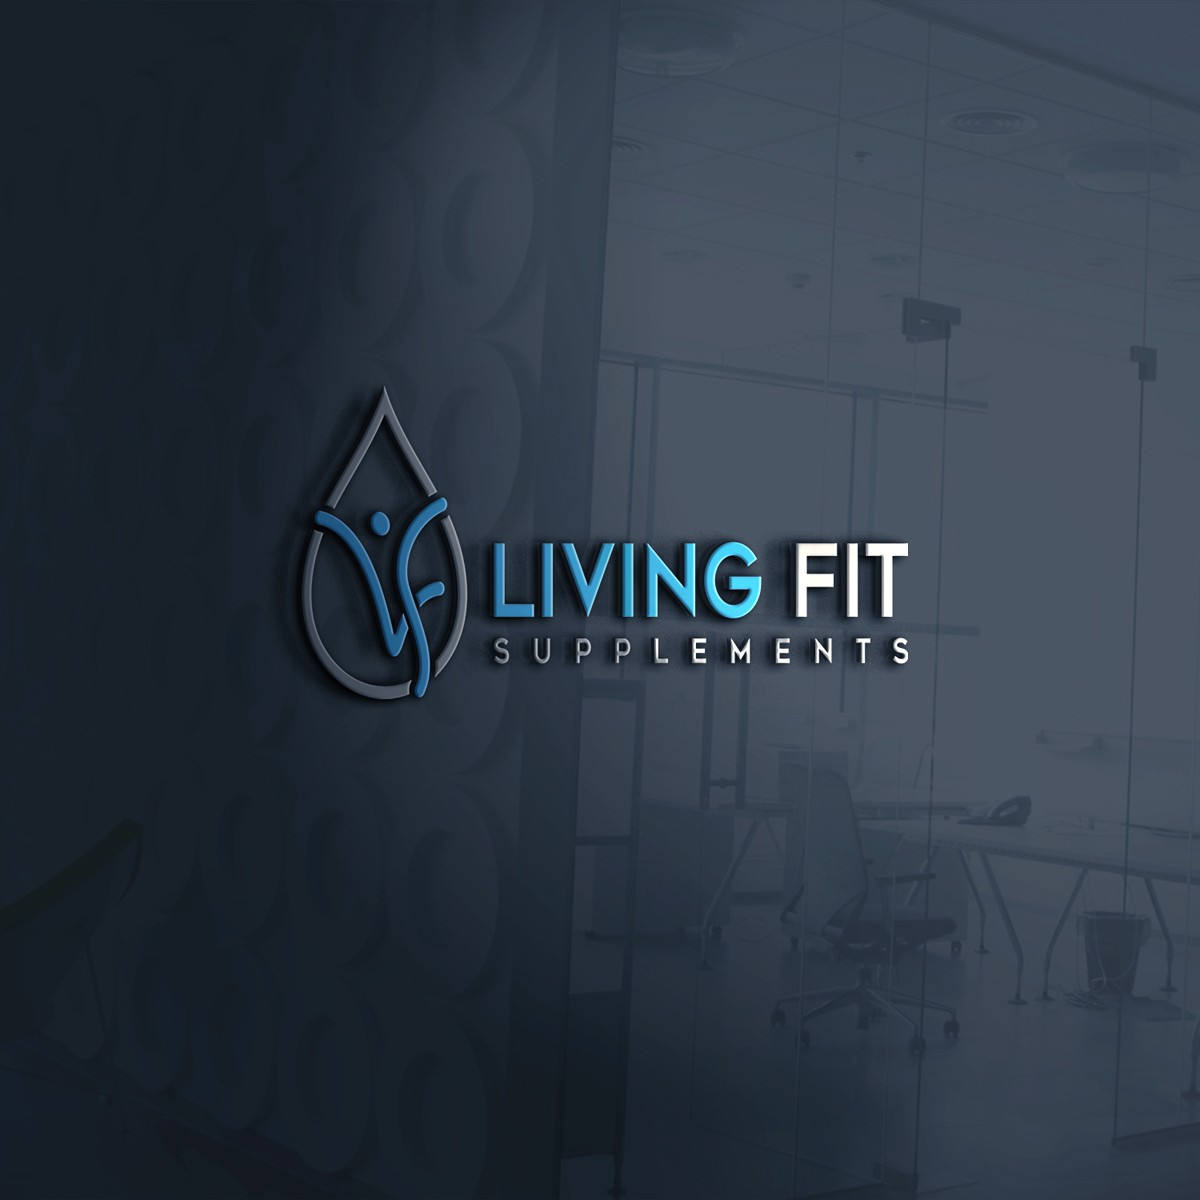 Design a logo emphasizing a Fit lifestyle.  Like LivingFit as one word & the use of 2 colors. Either red & blue or red &